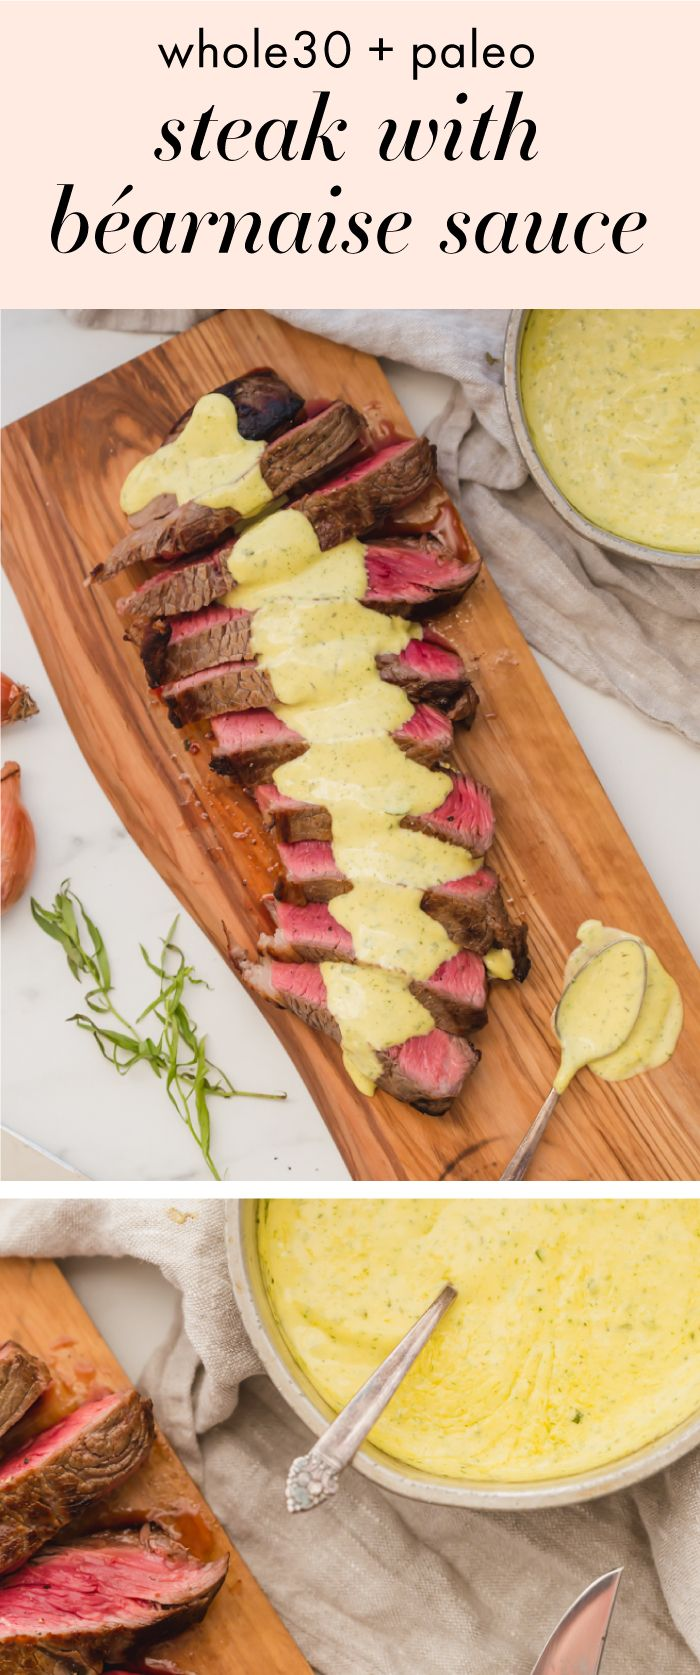 Whole30 steak with béarnaise sauce